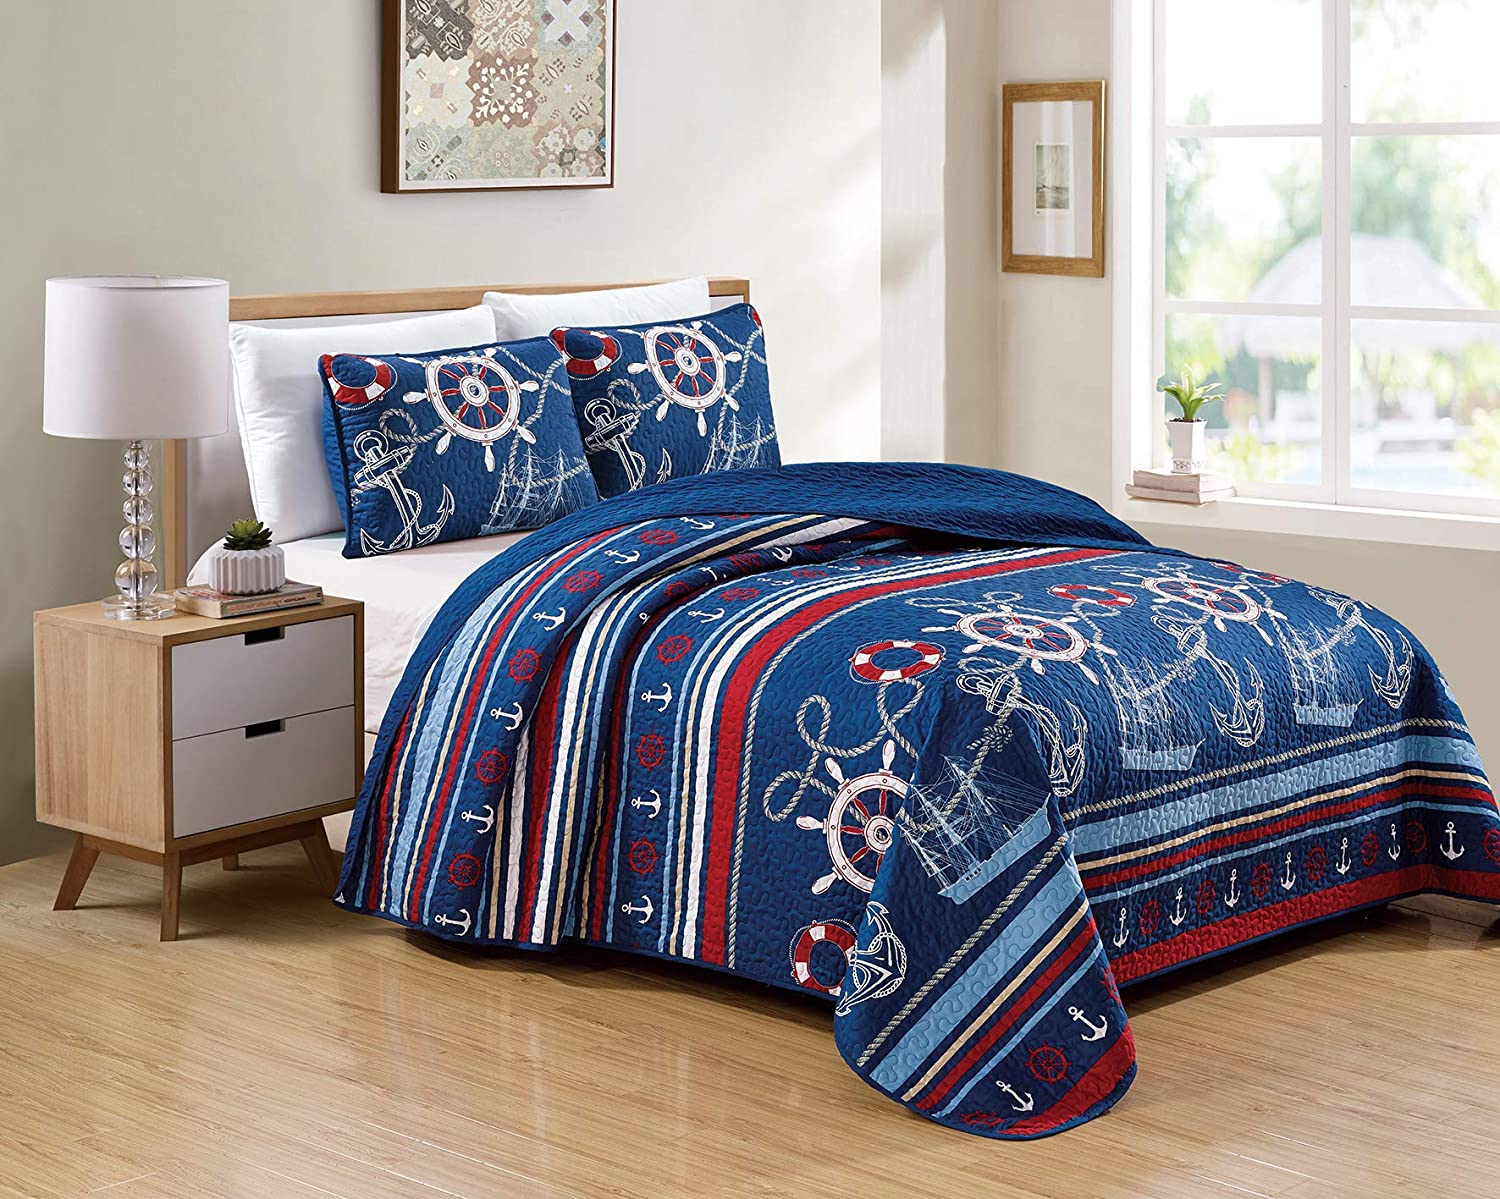 Better Home Style 3 Piece Light & Dark Blue White Red Striped Nautical Ships Helms Anchors Sailor Printed Design Quilt Coverlet Bedspread Oversized Bed Cover Set # 10586 (King/Cal-King)